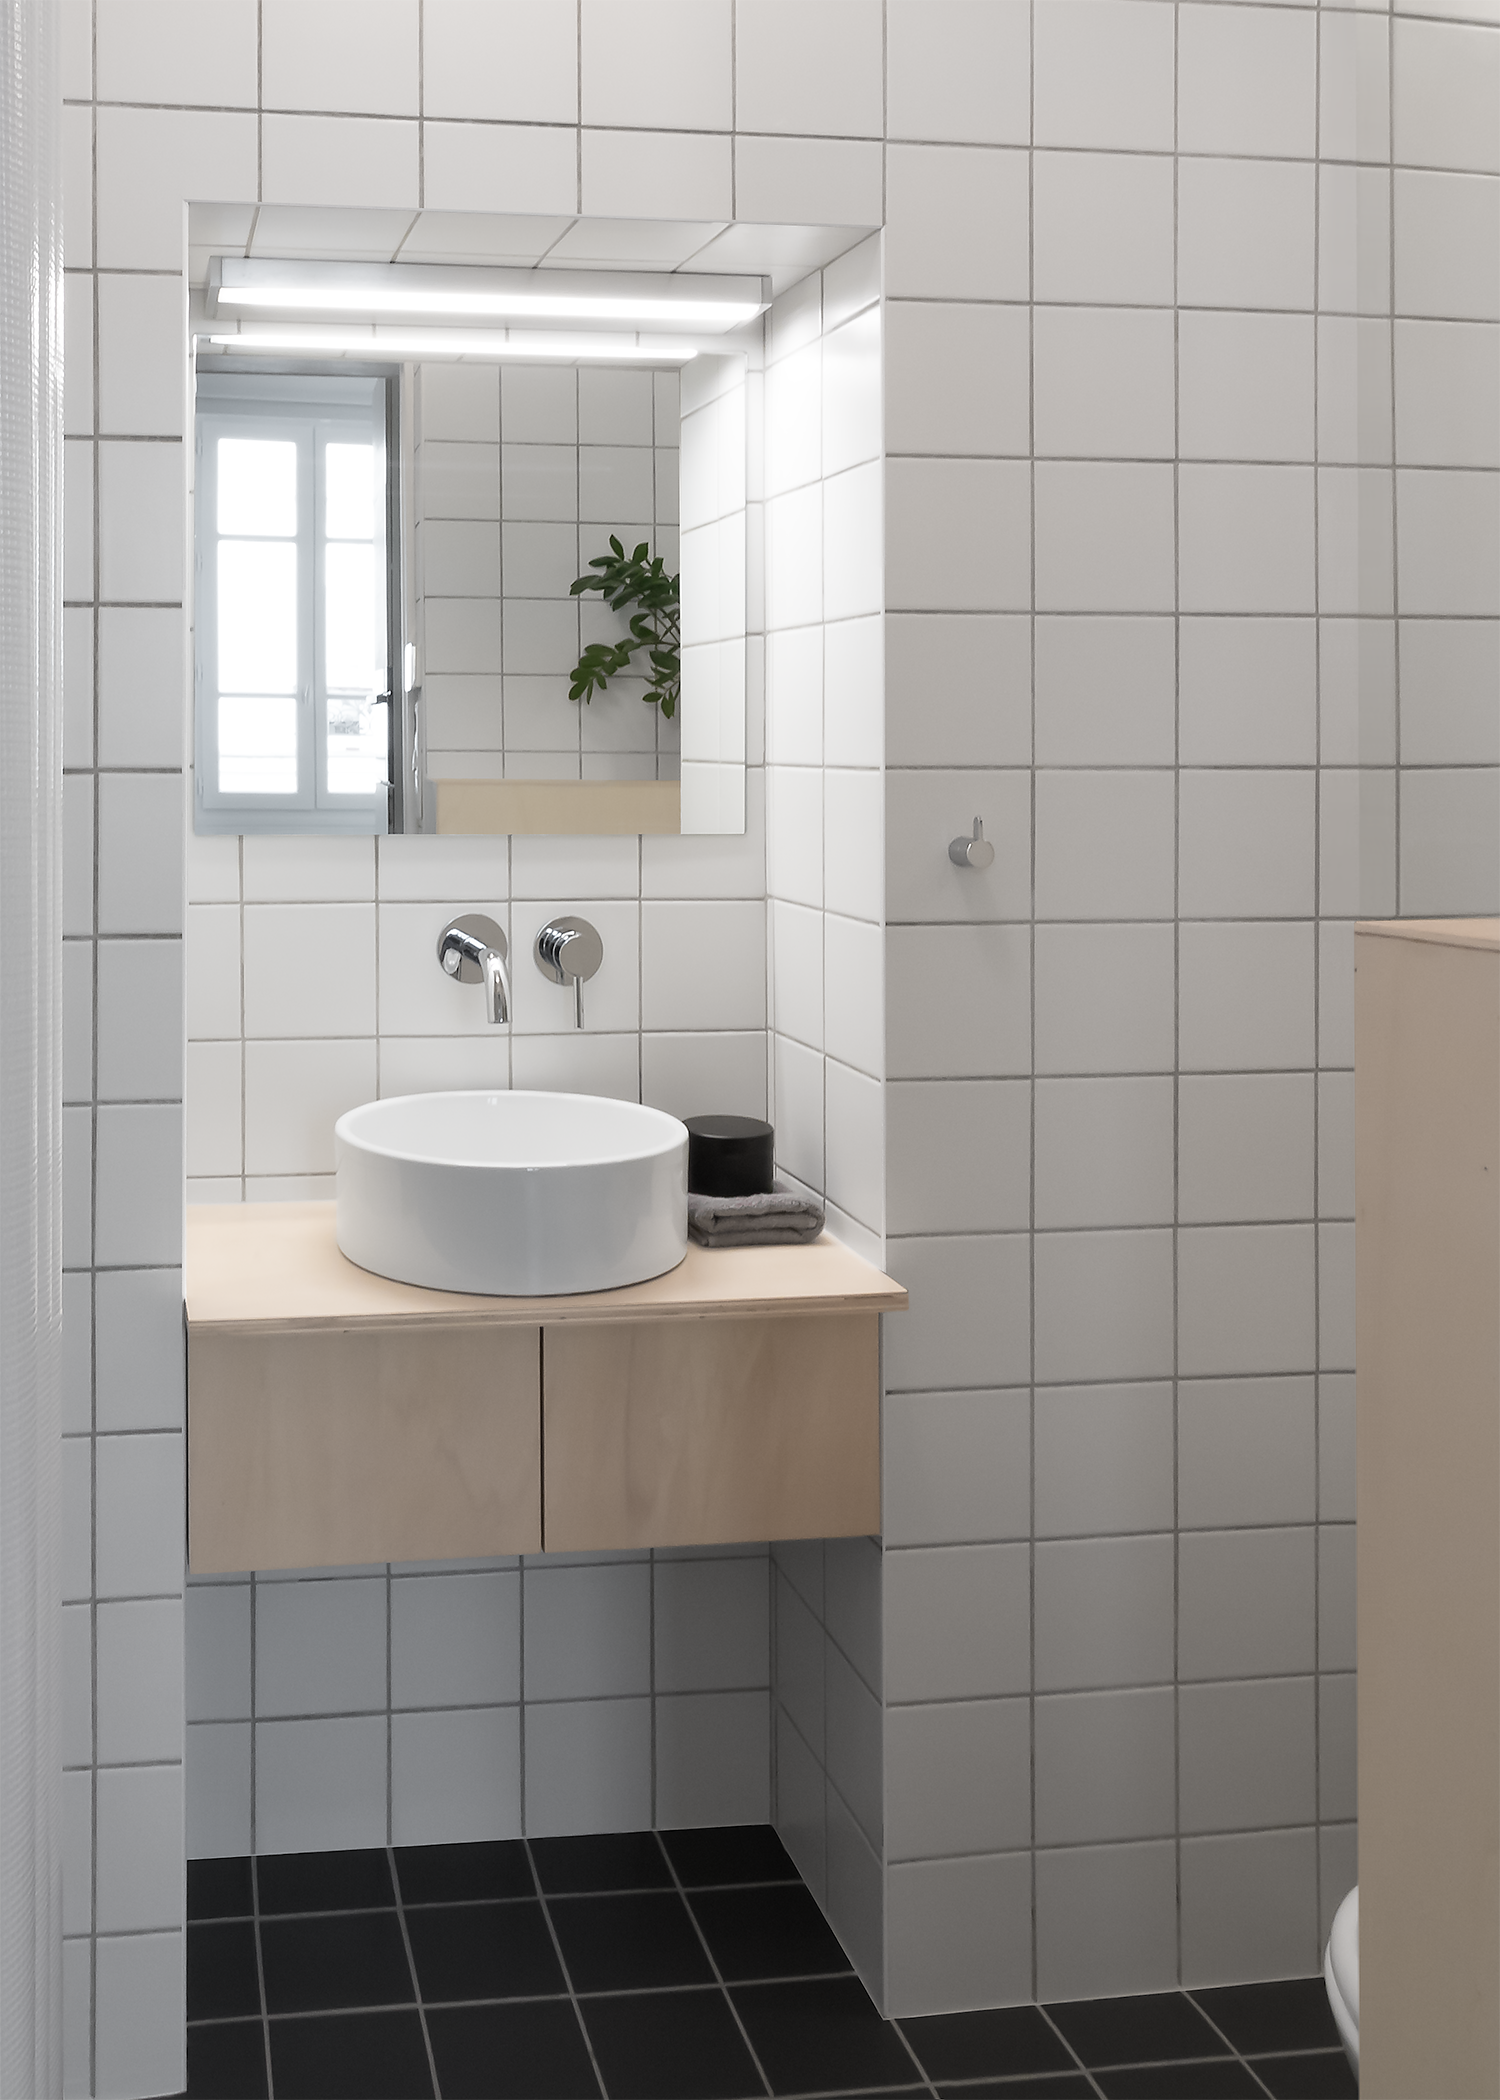 Japanese style minimal bathroom with square white wall and grey floor tiles and plywood cabinet